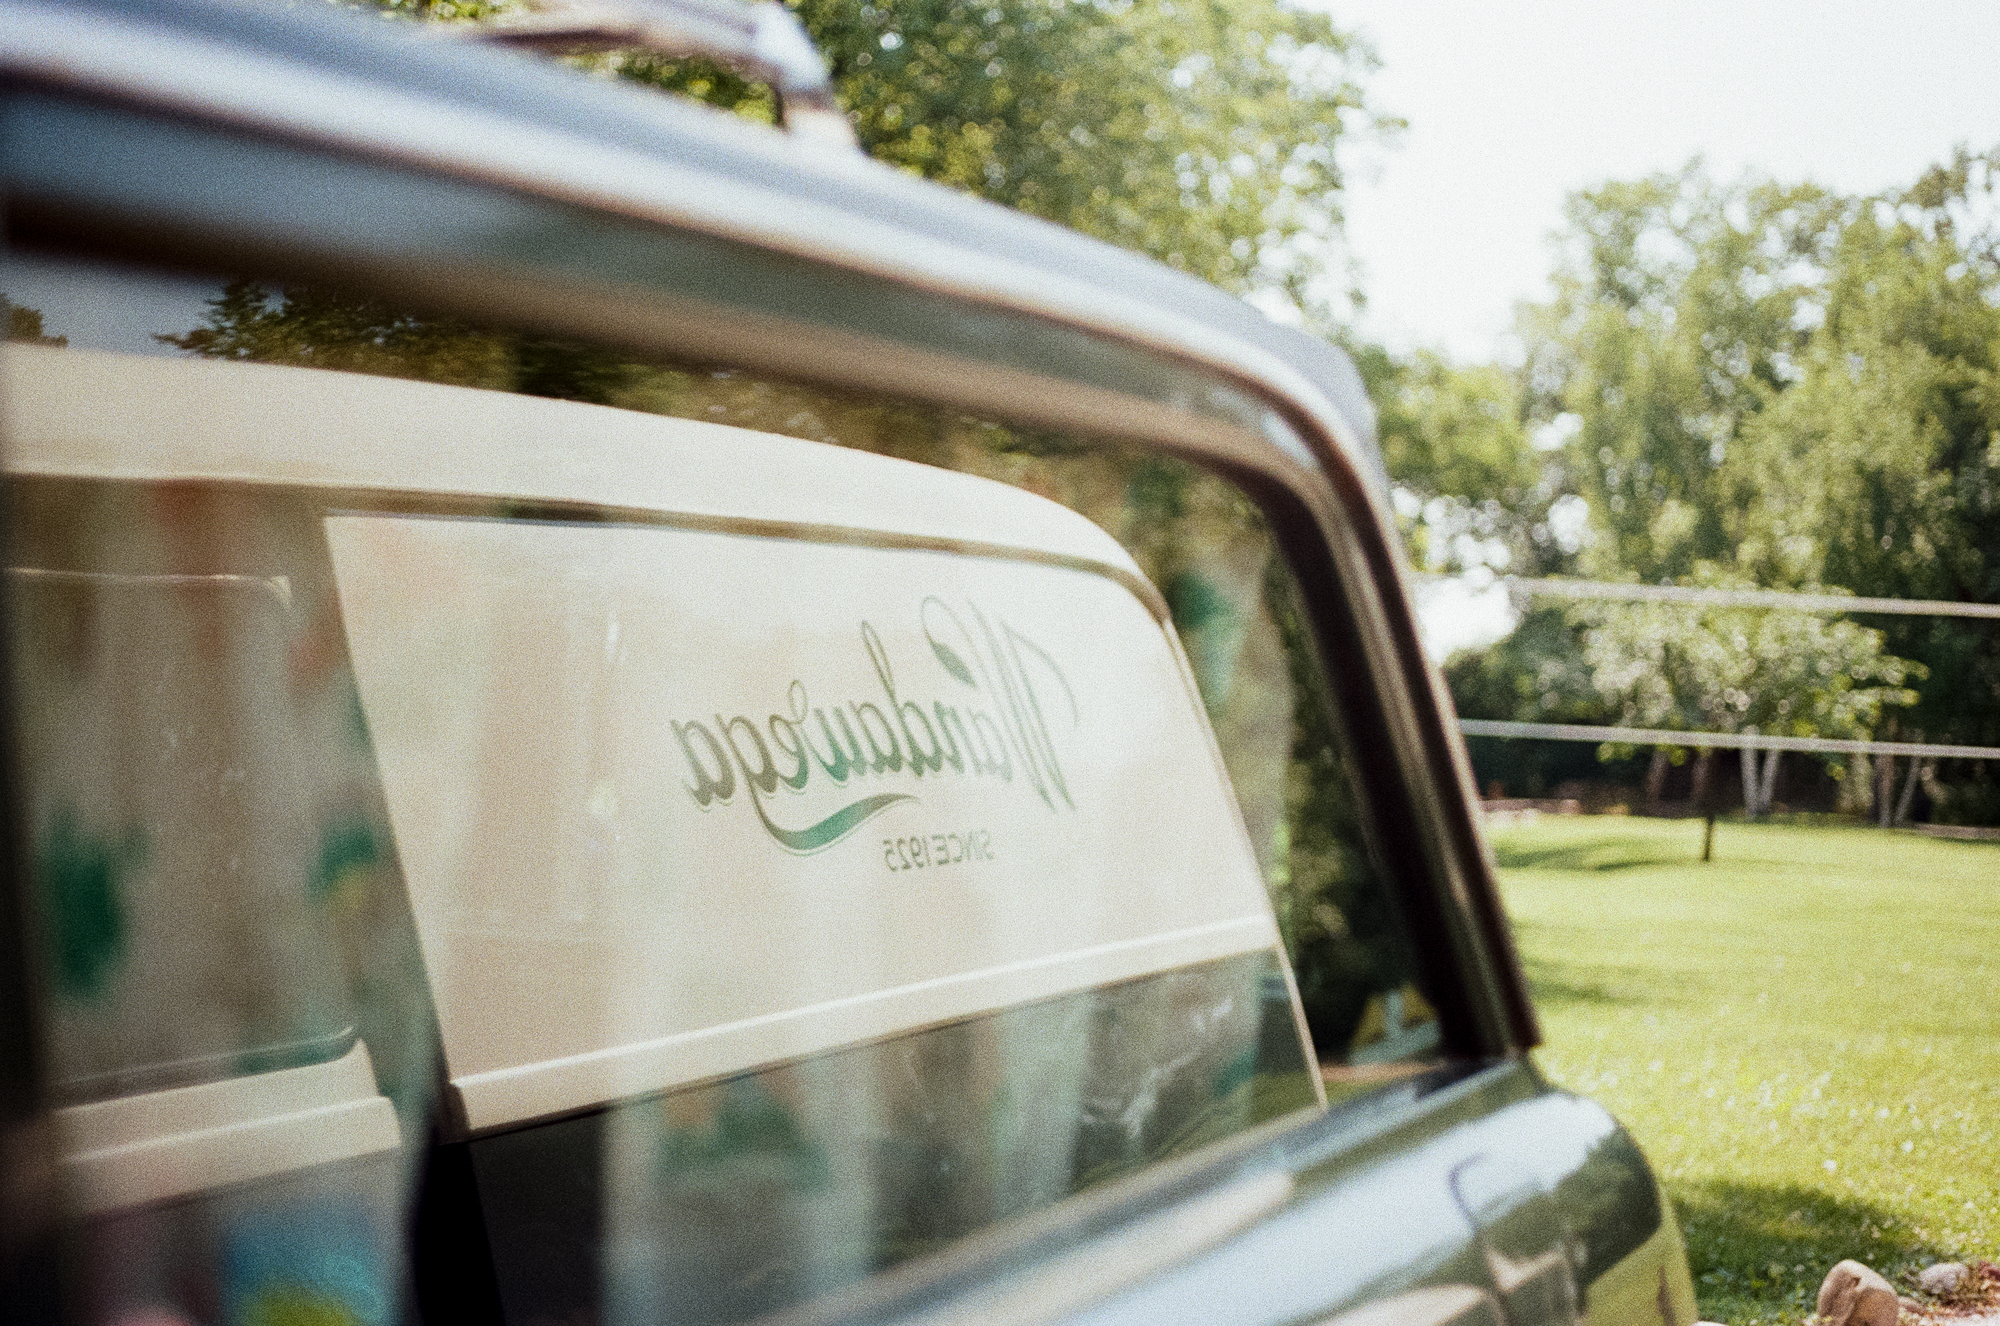 The  Camp Wandawega  cars in Elkhorn, Wisconsin during Let's Camp 2018 photographed for  Driftless magazine  and hosted by  The Glossary  and  Feminest .